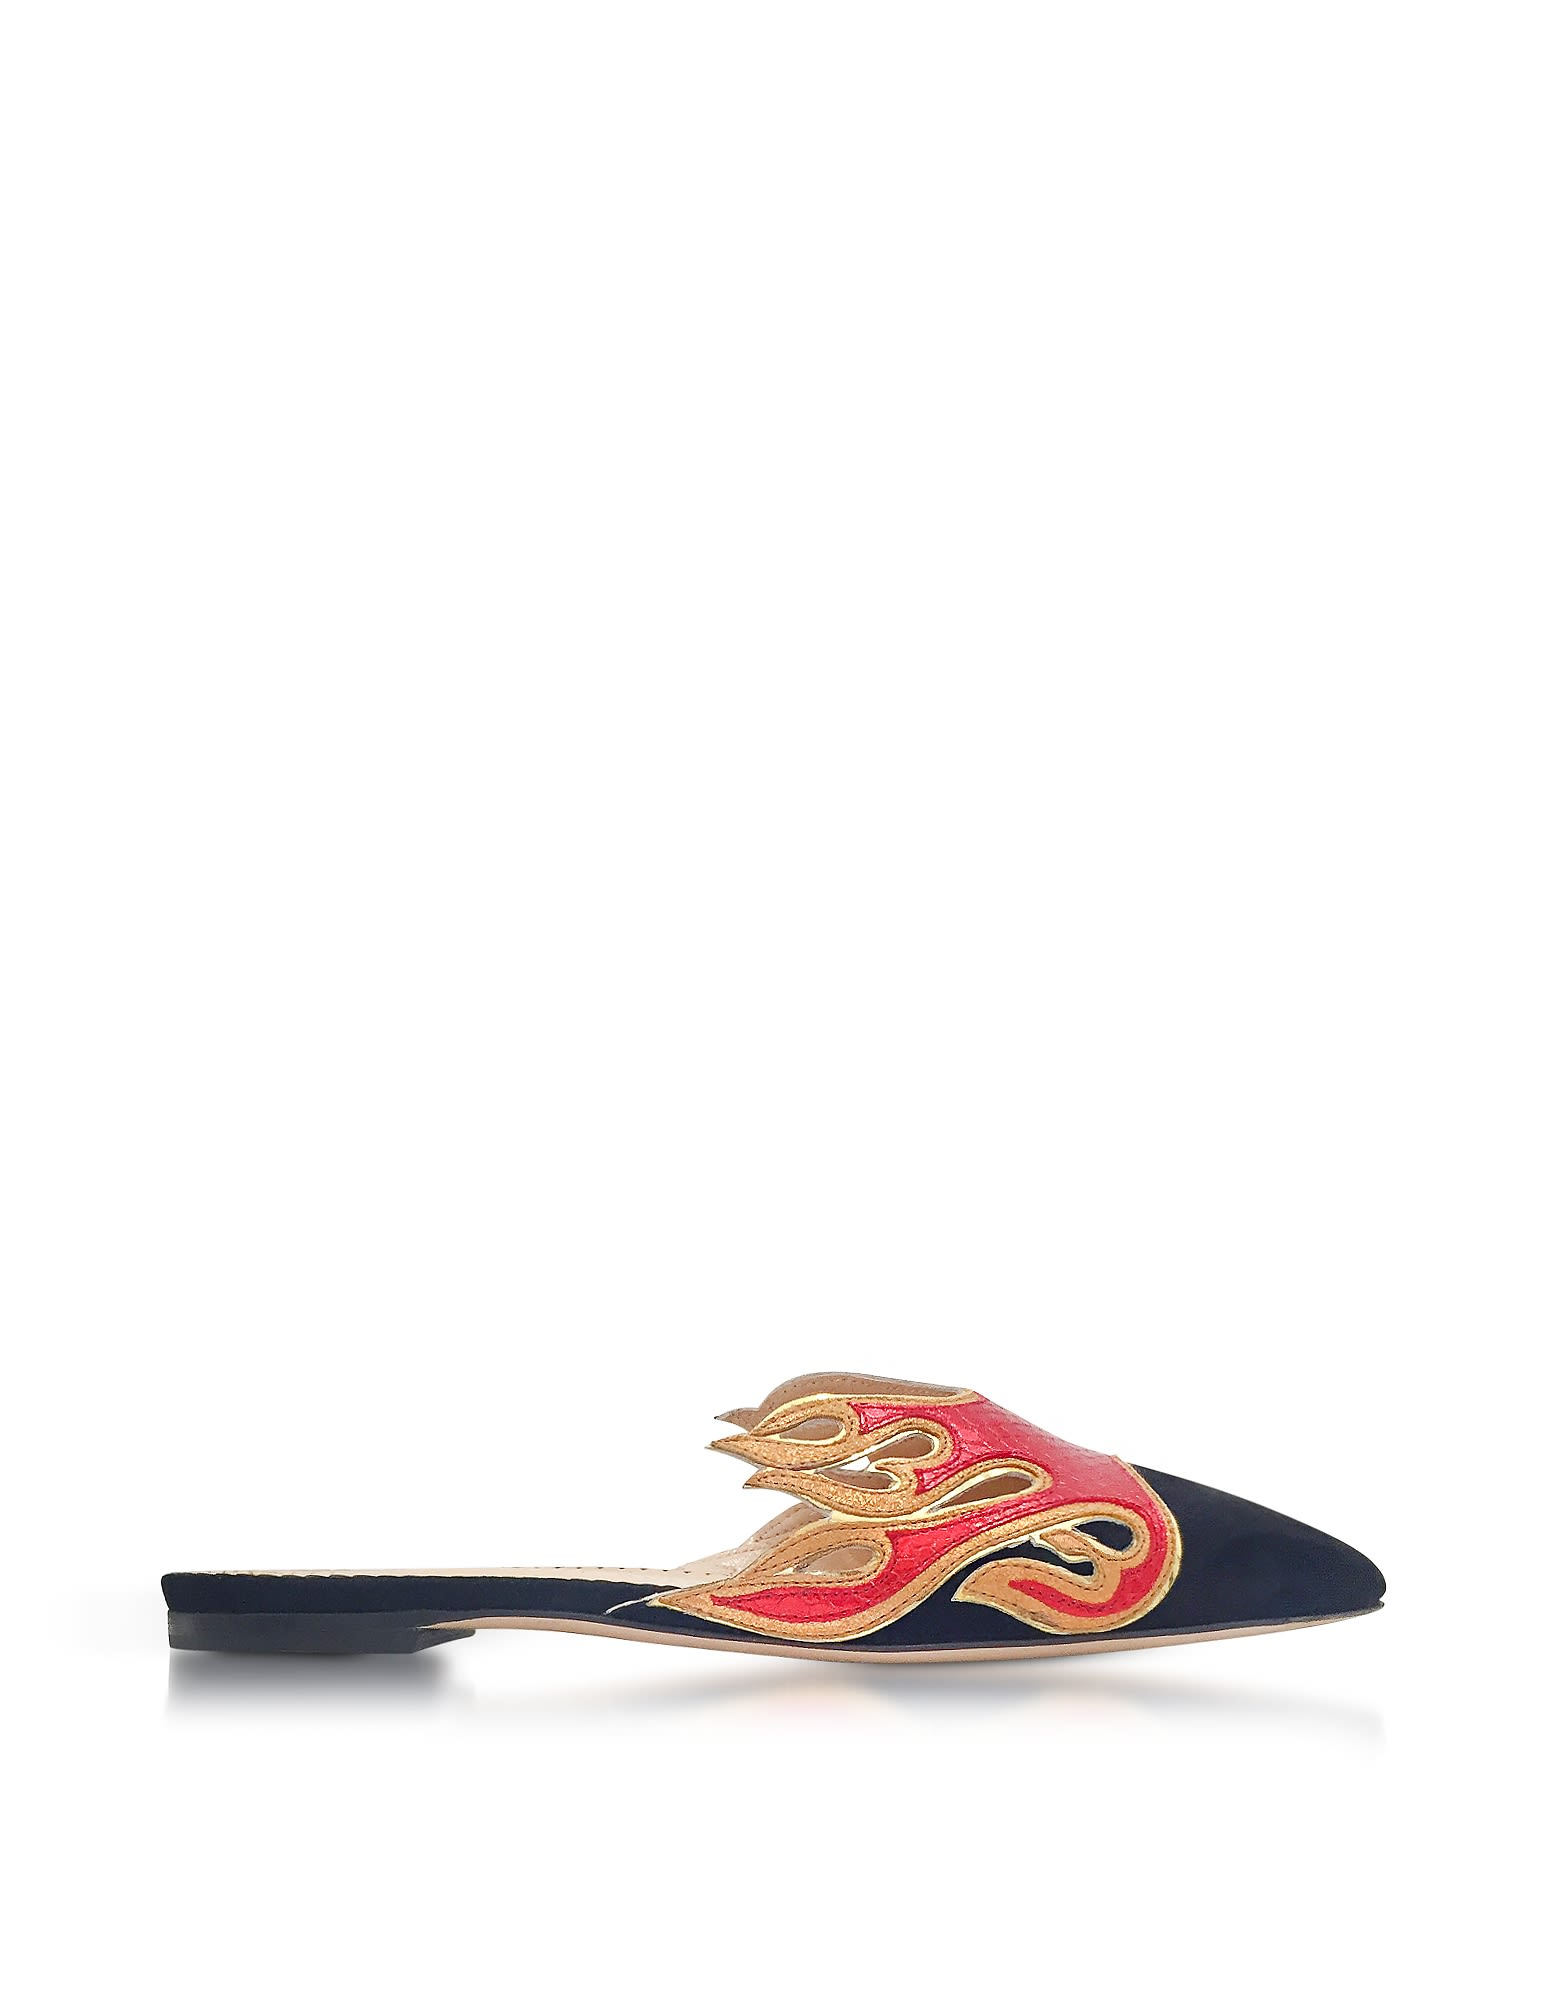 CHARLOTTE OLYMPIA BLACK SUEDE AND RED SNAKE-PRINTED LEATHER FLAMING SLIDE MULES